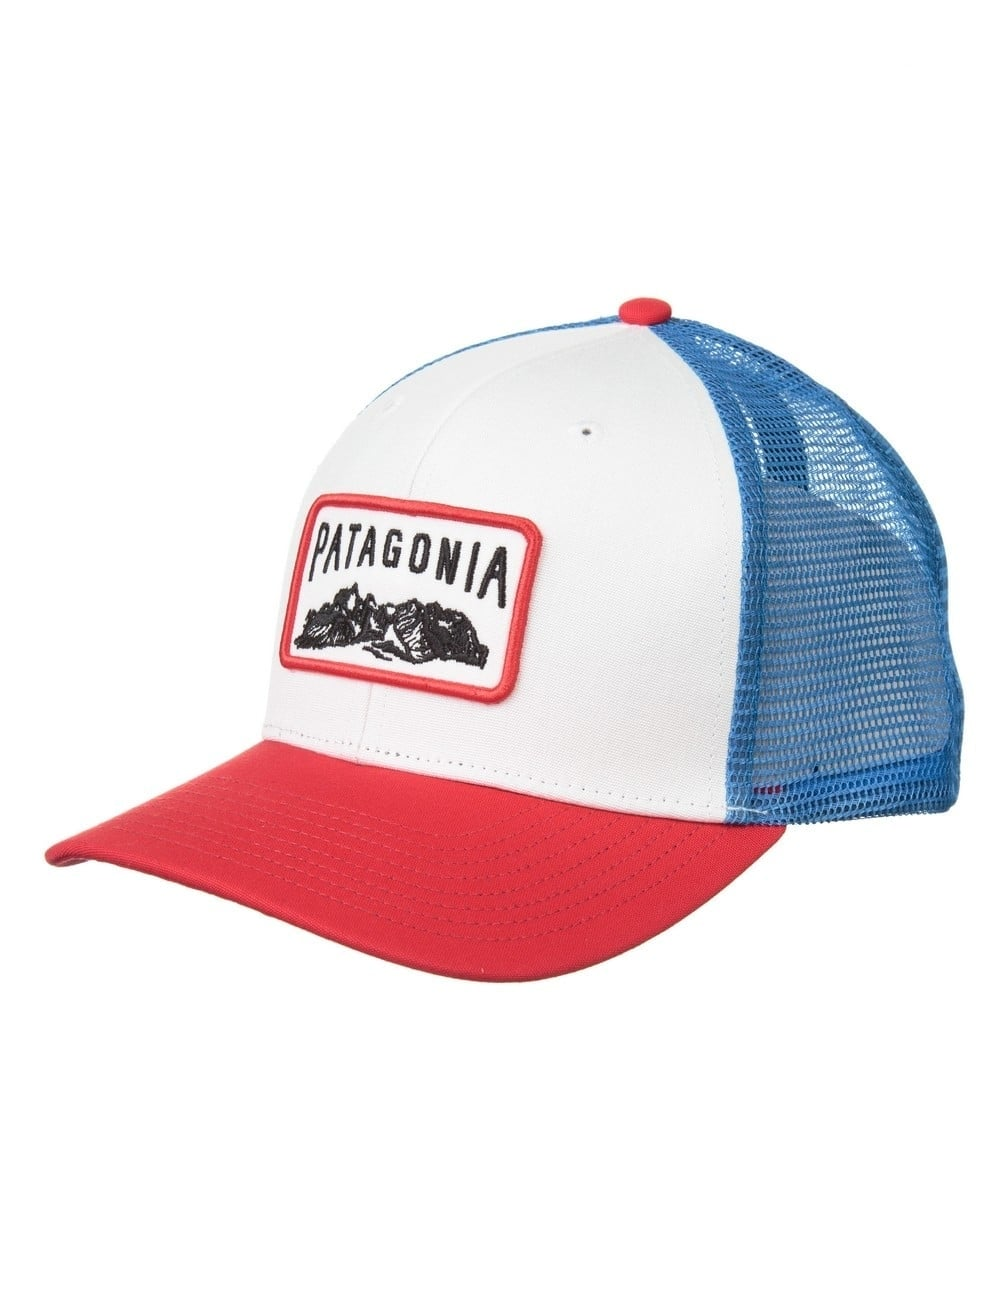 8cc10c7d9a249 Patagonia Climb A Mountain Trucker Hat - White Totally Red ...